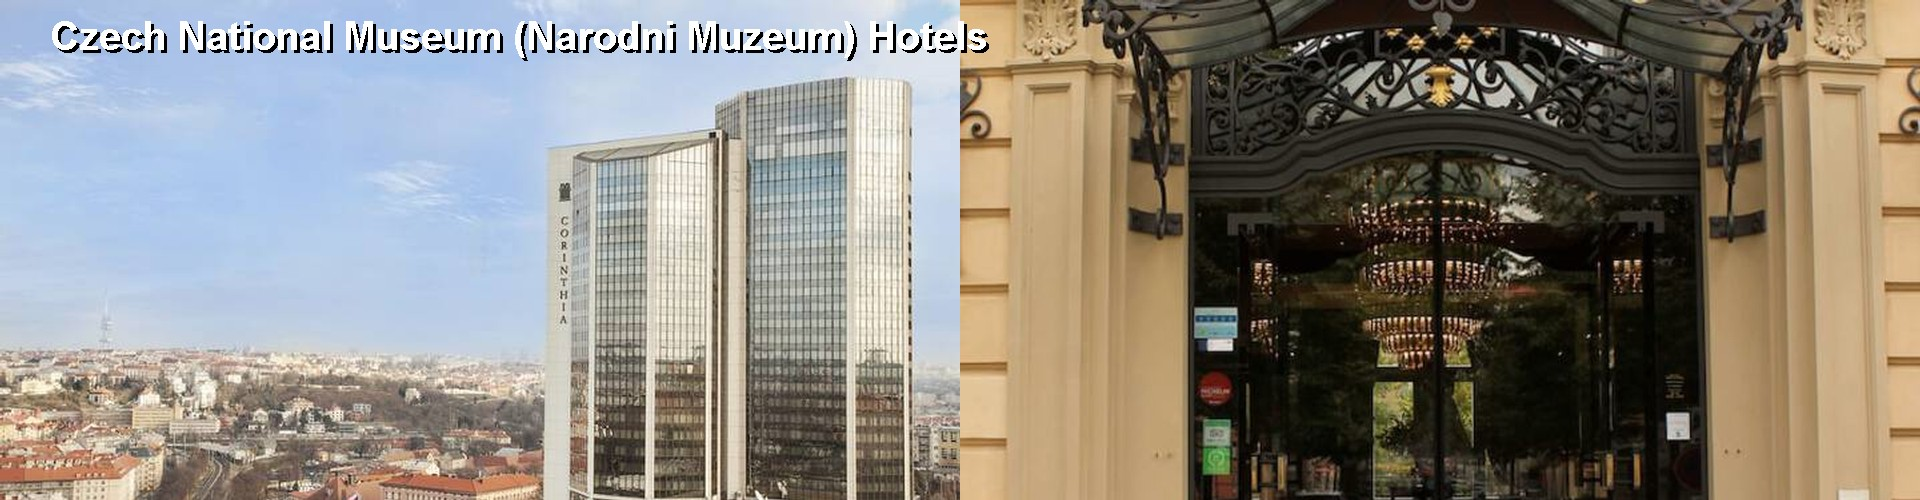 5 Best Hotels near Czech National Museum (Narodni Muzeum)